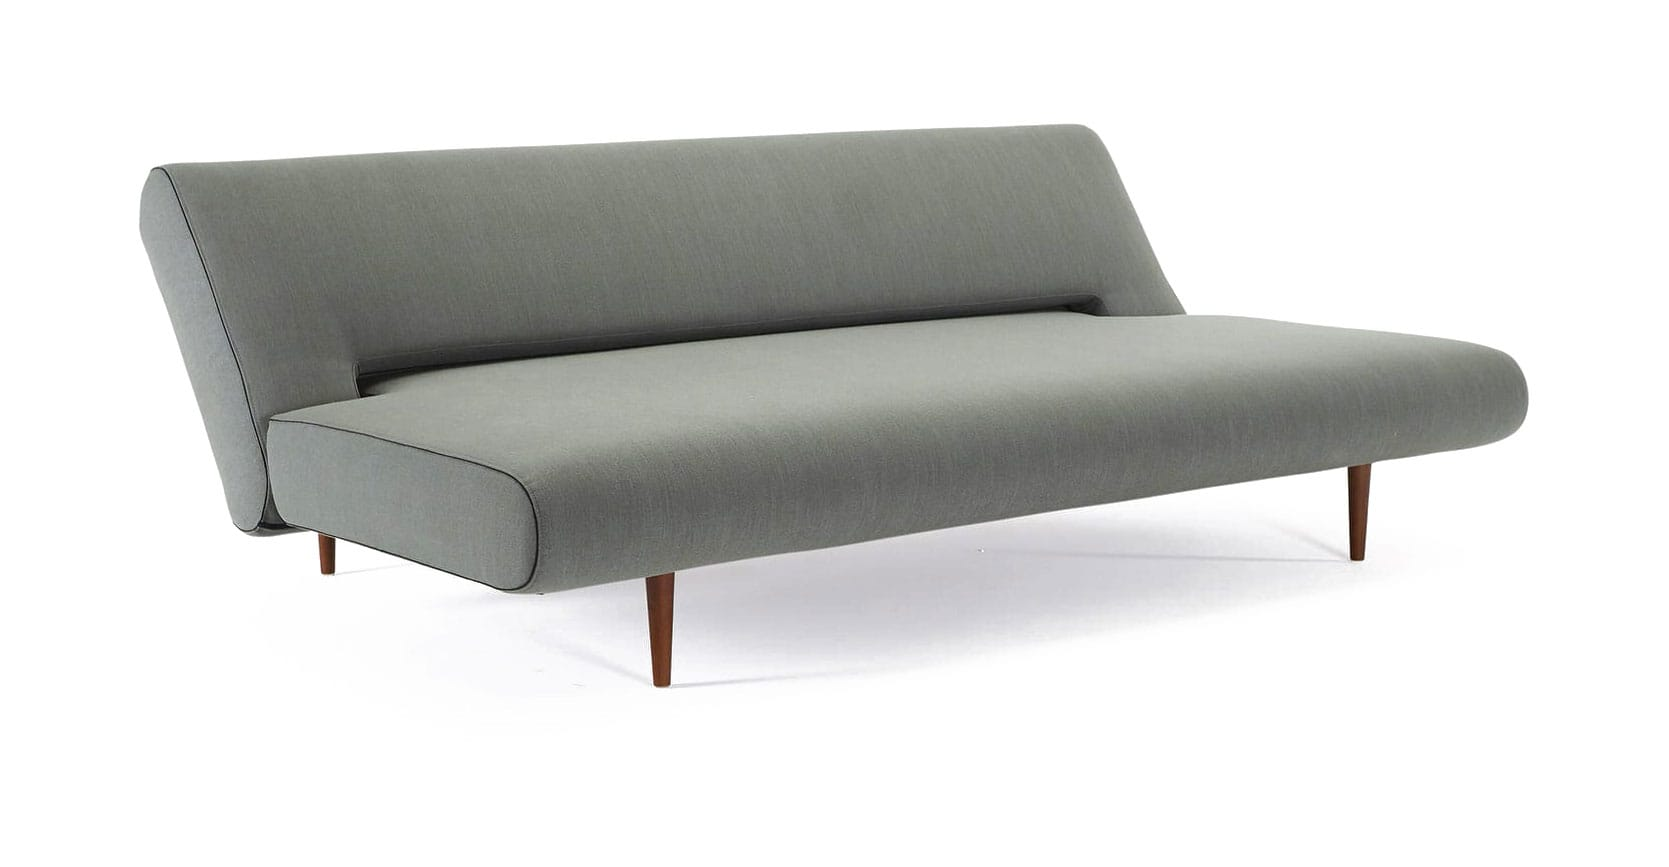 Unfurl Lounger Sofa Bed Full Size Elegance Green By Innovation